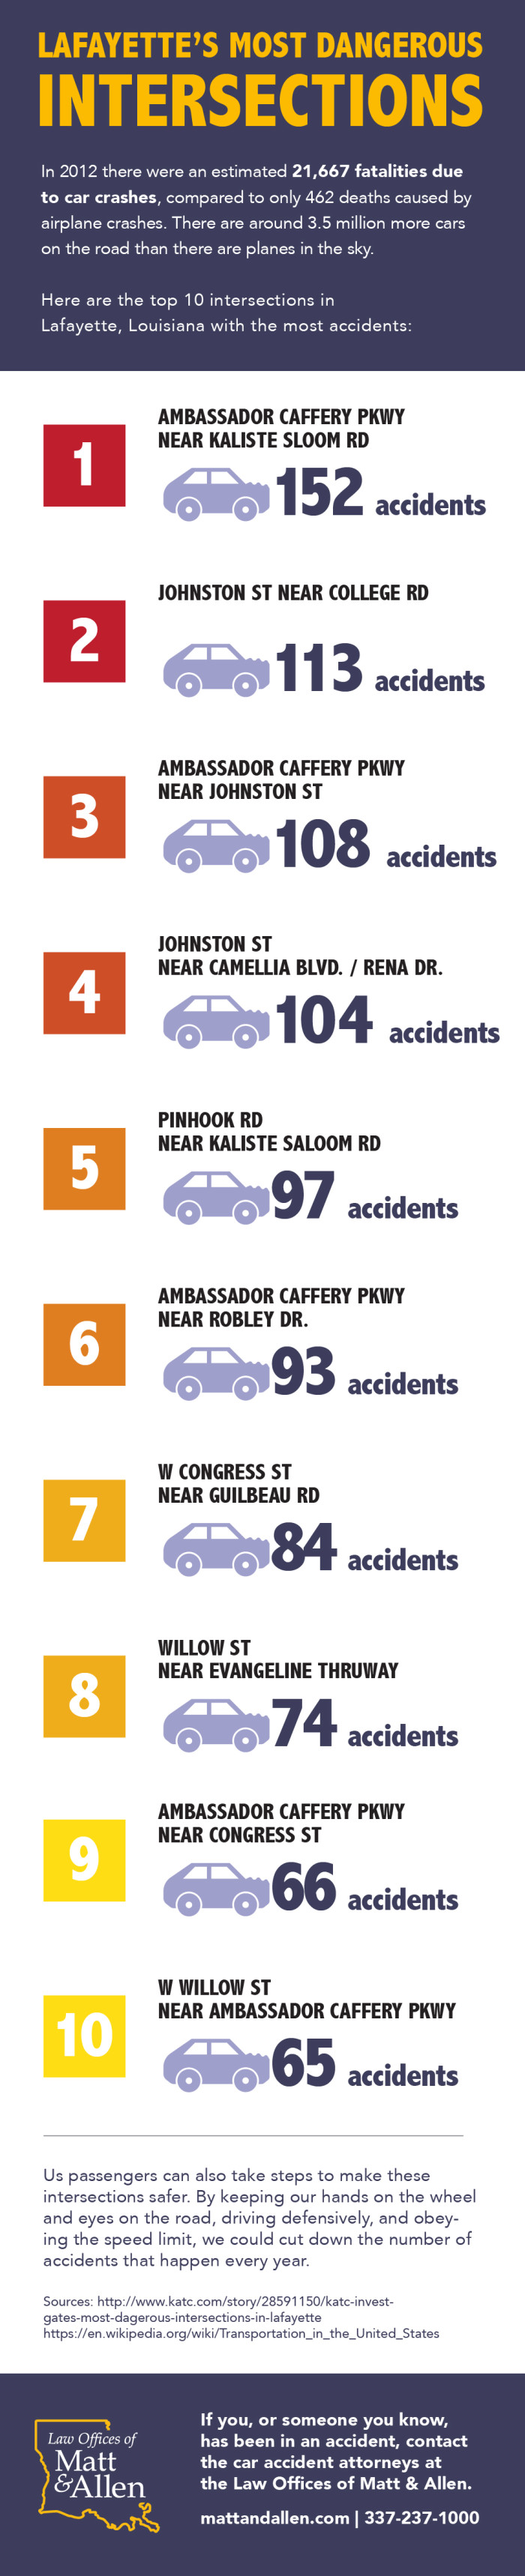 Lafayette-Personal-Injury-Attorney-Car-Accident-Infographic